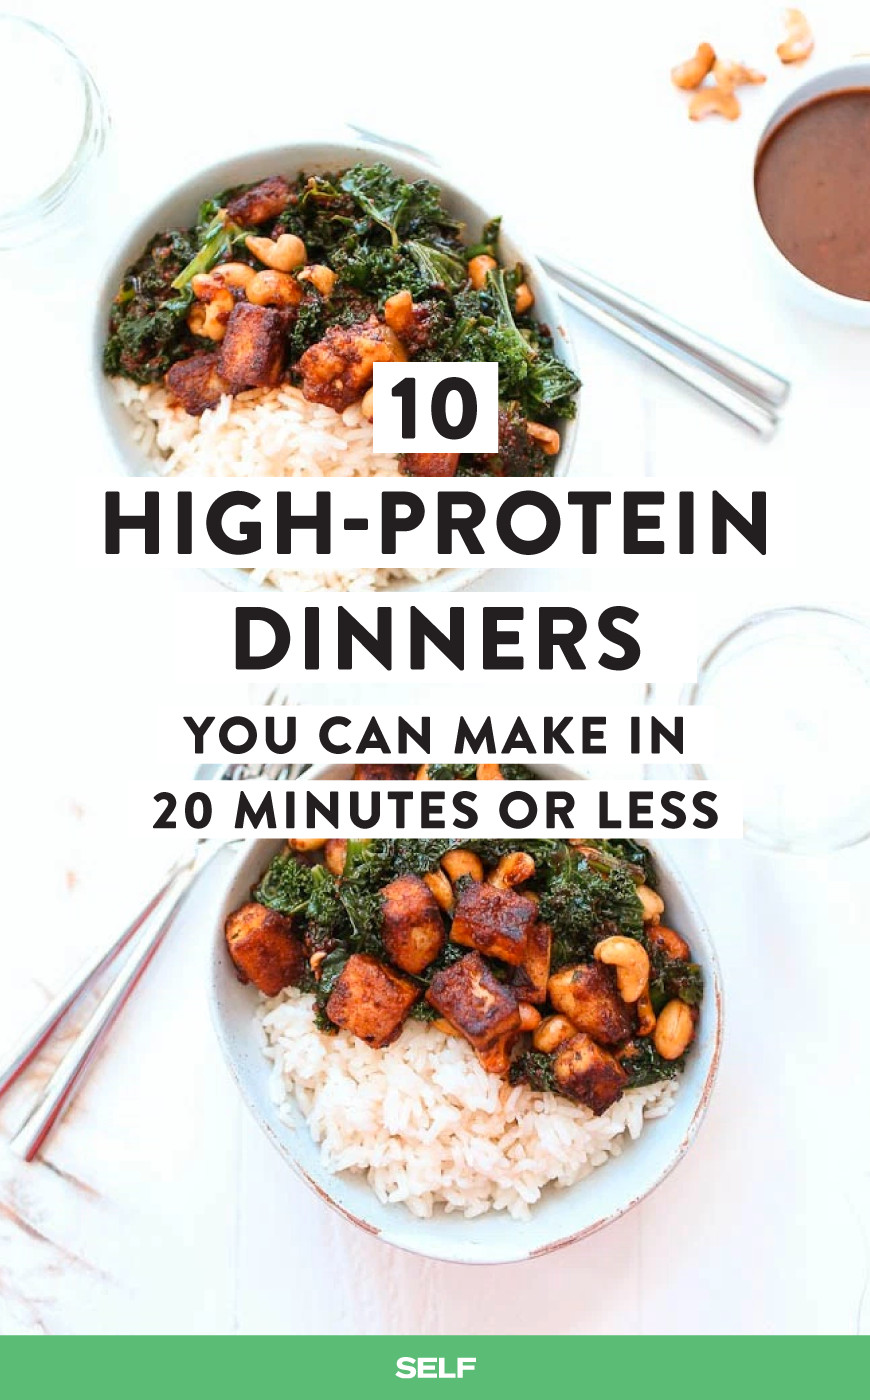 High Protein Dinner Recipes  10 High Protein Dinners You Can Make In 20 Minutes Less